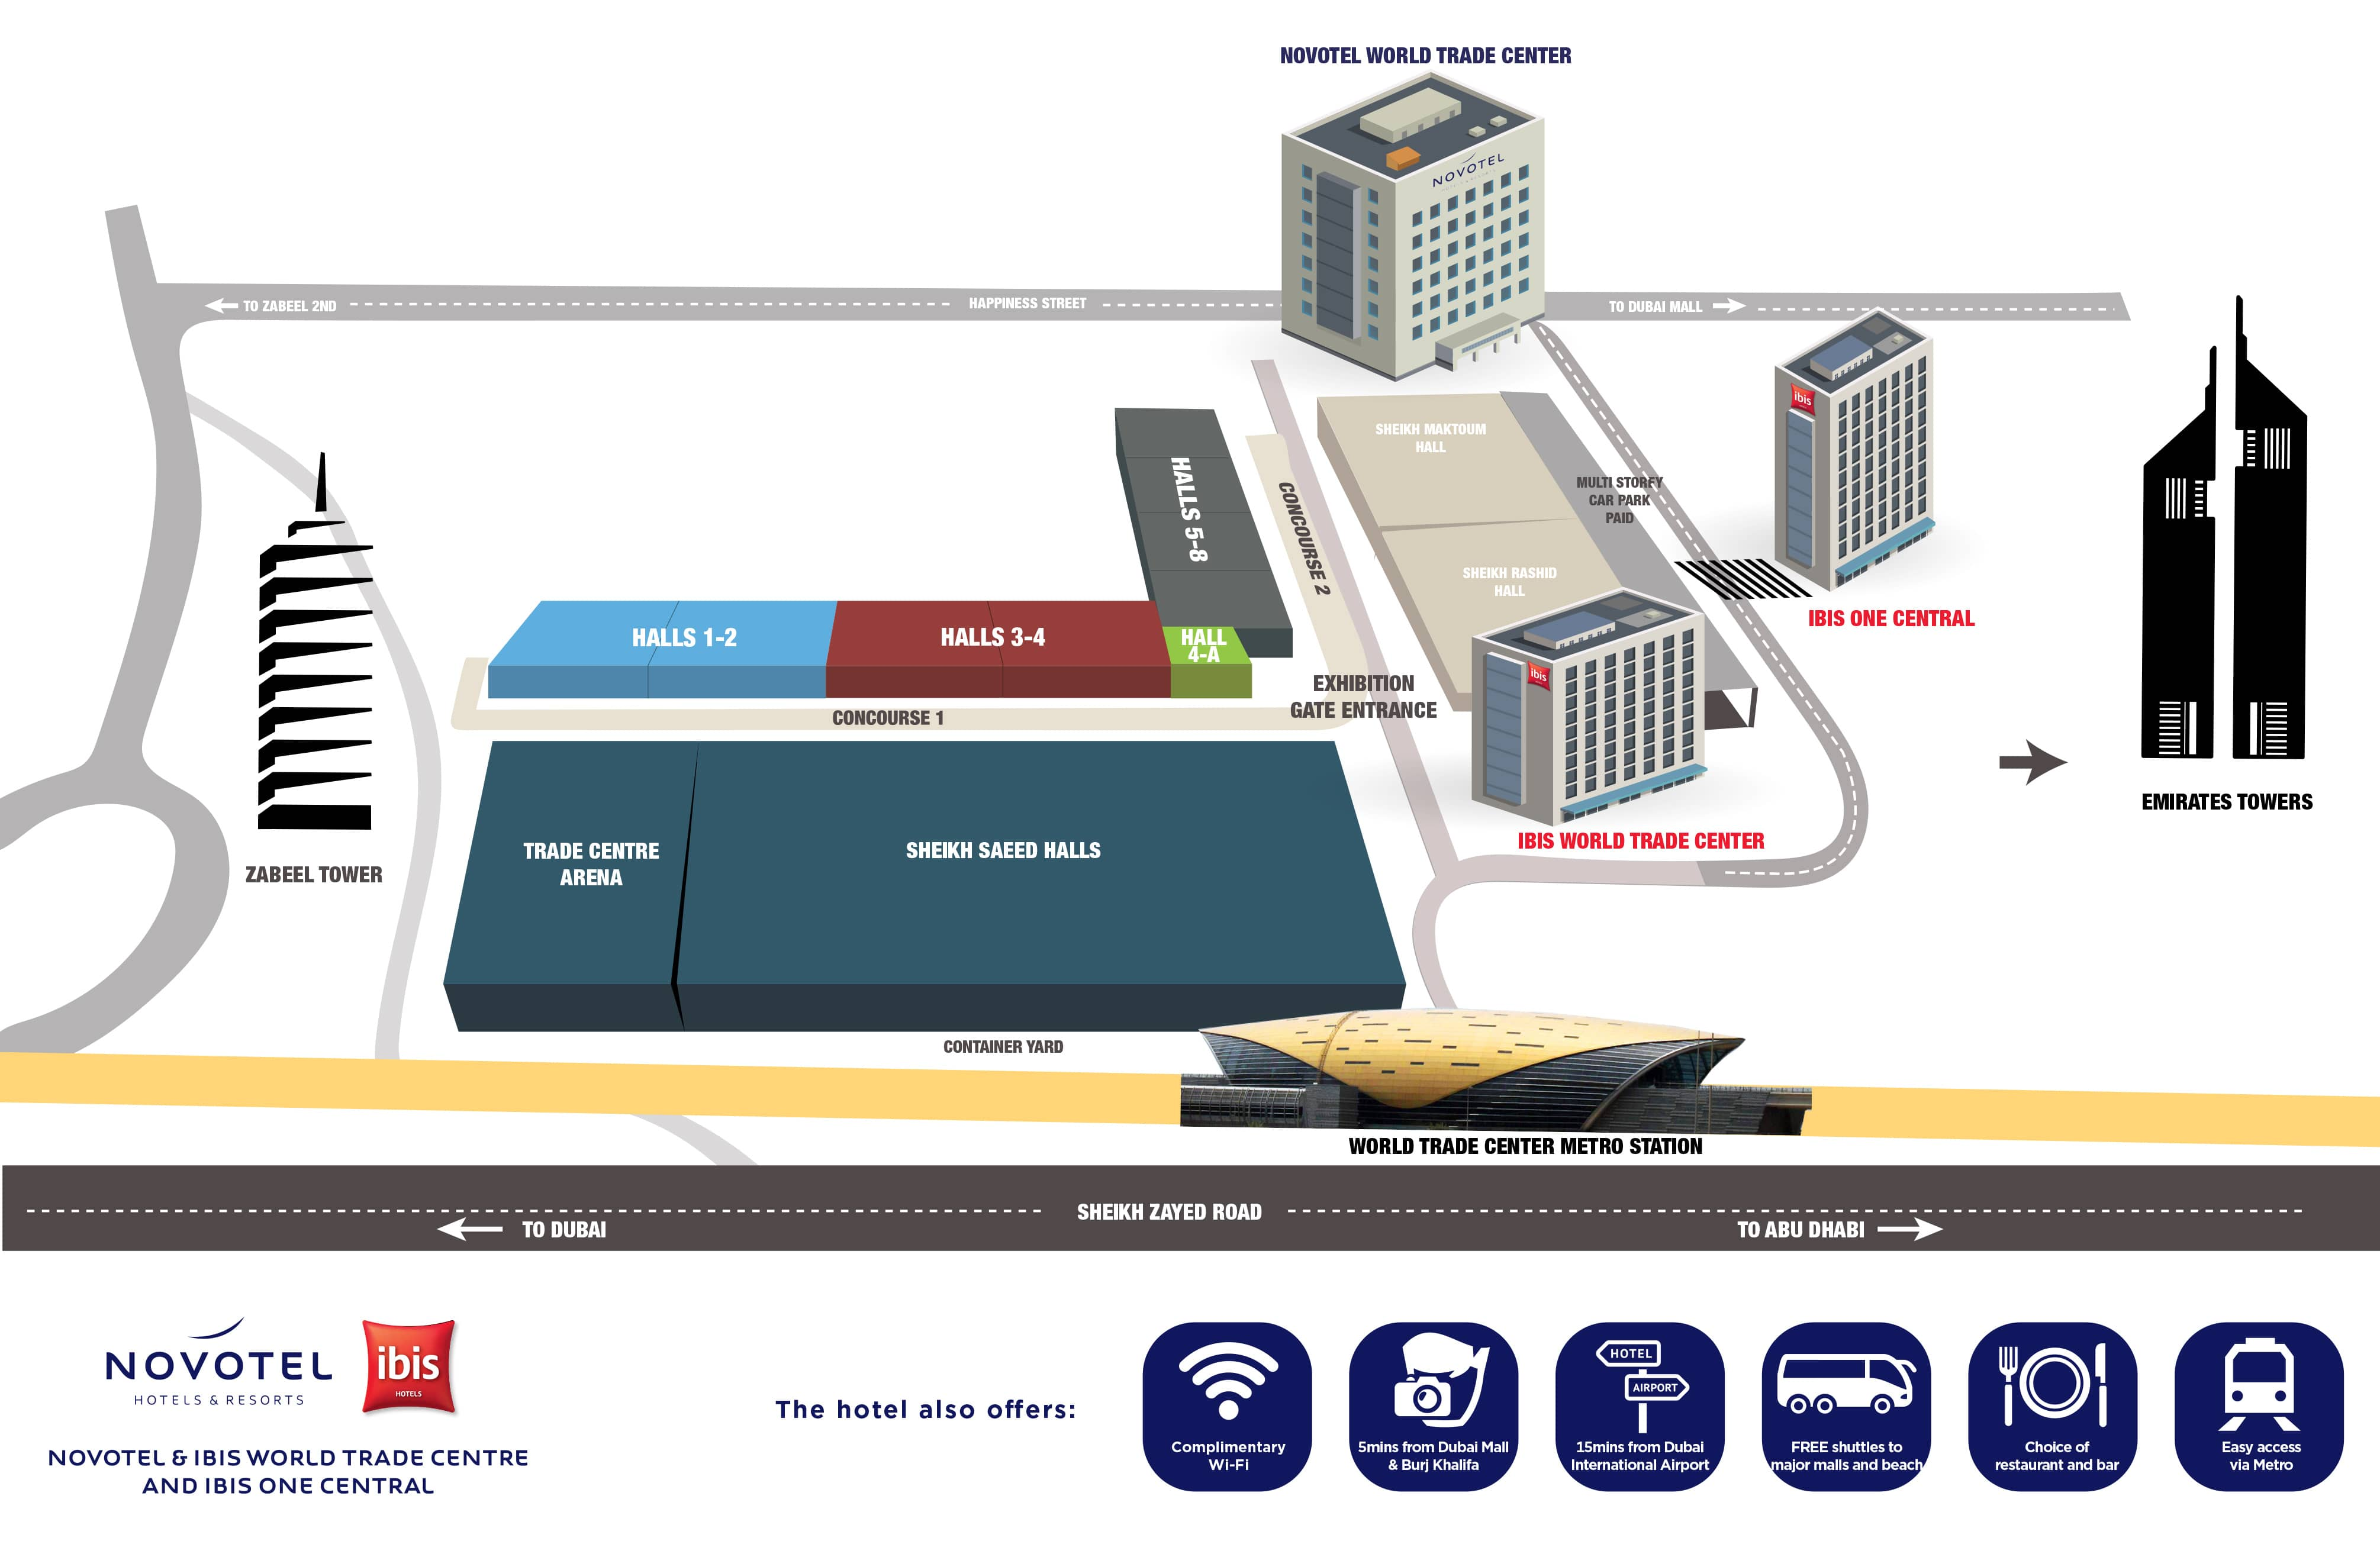 Novotel World Trade Centre Dubai - Directions & Maps on